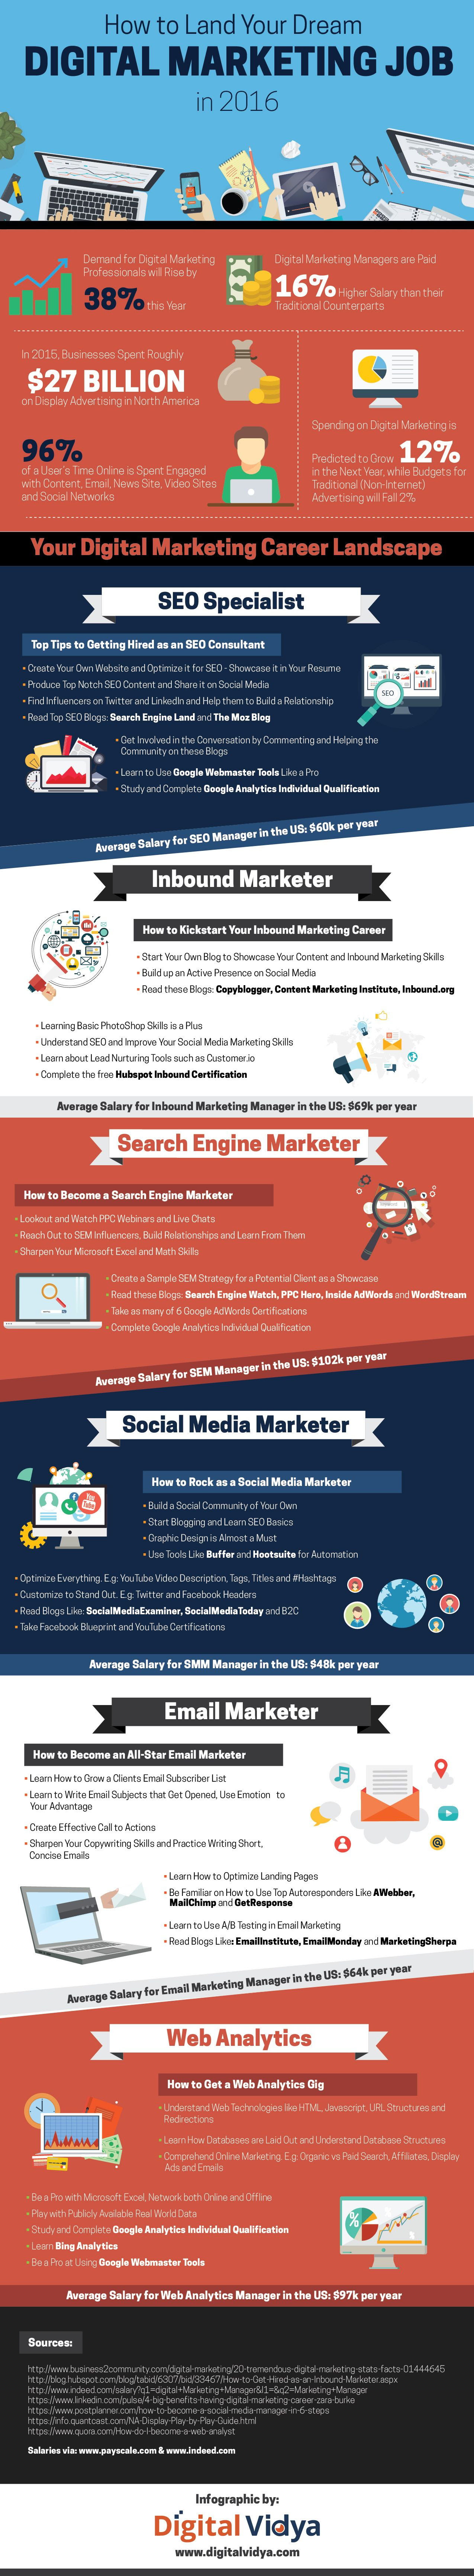 How to Land your Dream Digital Marketing Job in 2016? #Infographic